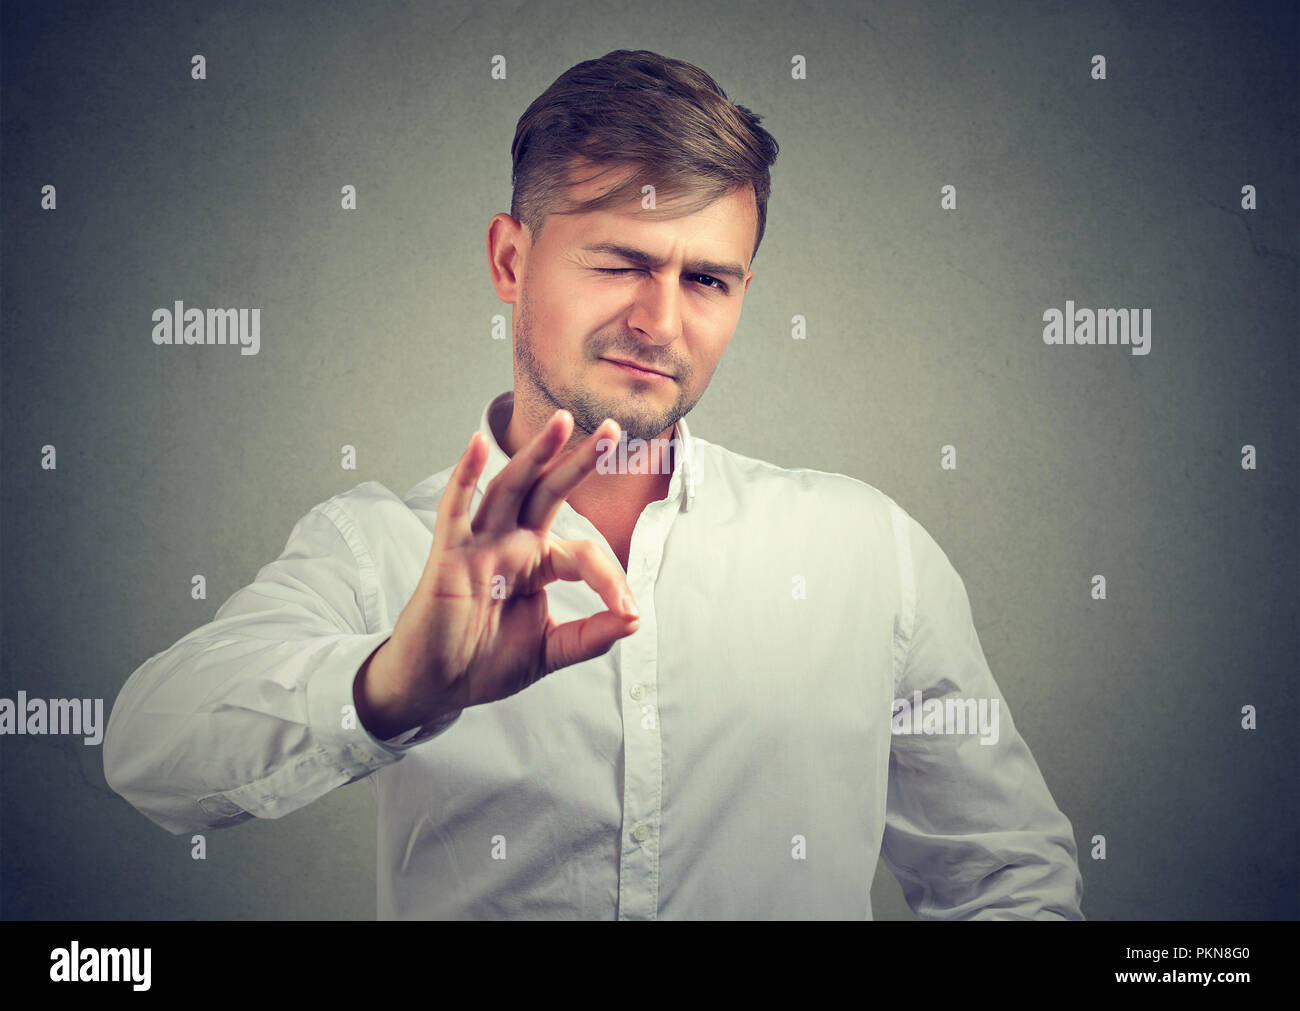 Handsome casual man winking at camera and showing OK gesture on gray background - Stock Image